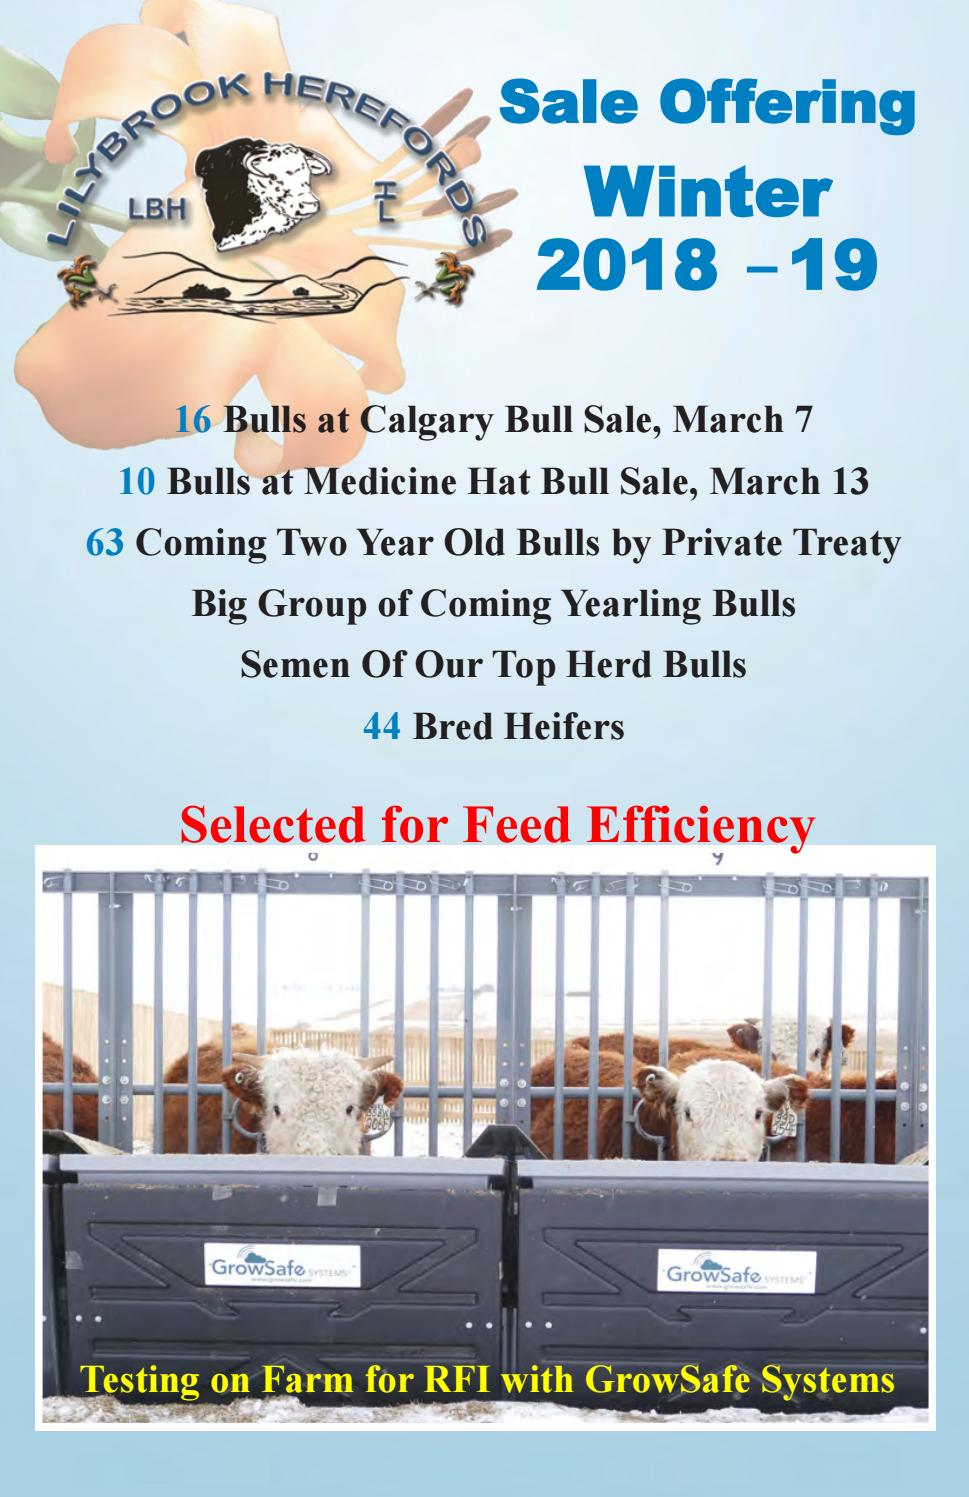 0ffe4627cfcfd1 Lilybrook Herefords Sale Offering Winter 2018-2019 by Canadian ...